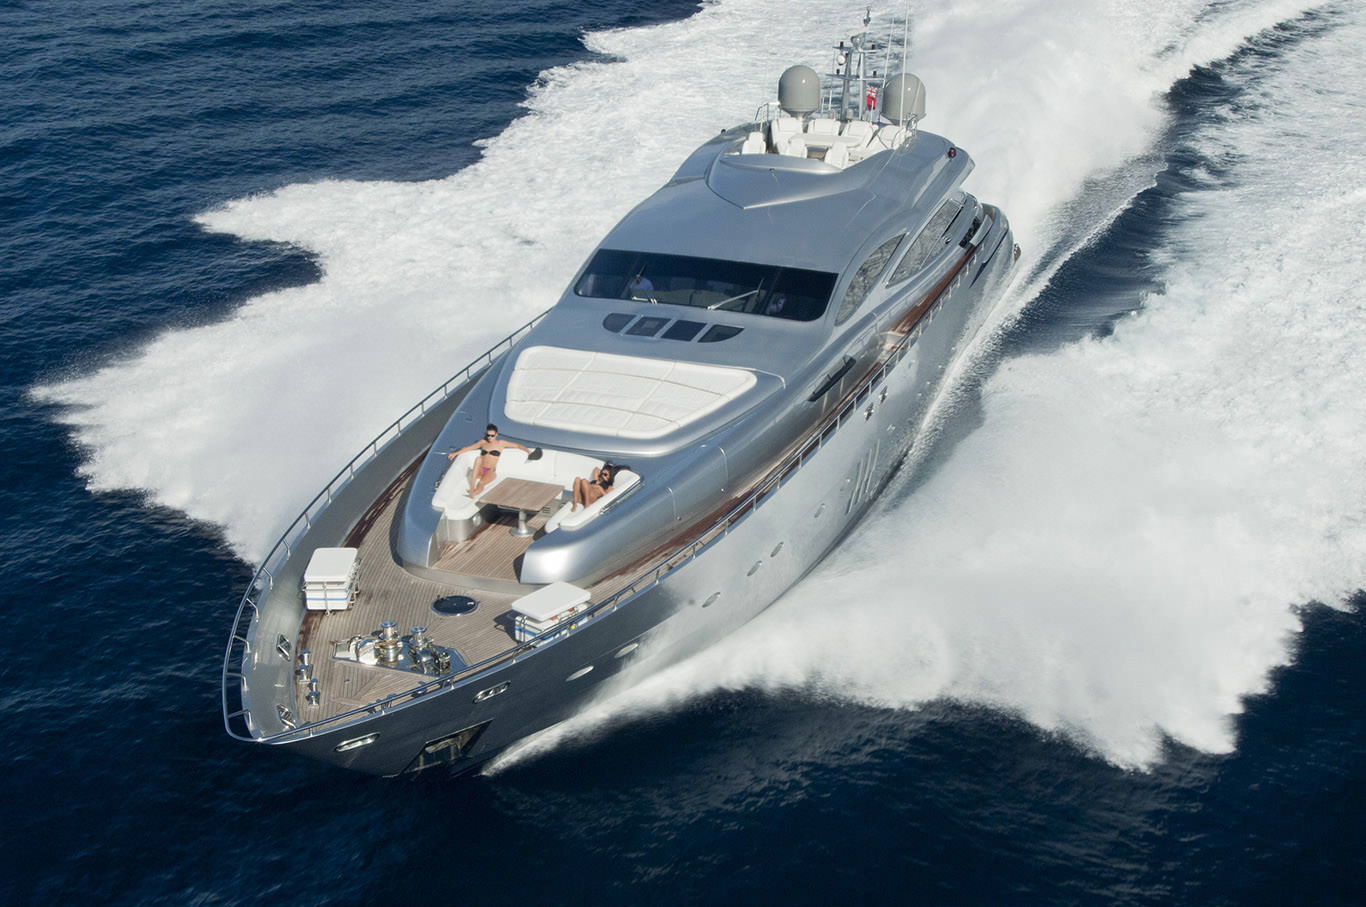 PRIVATE PLAN Pershing 115 Mistral 55 yacht charter